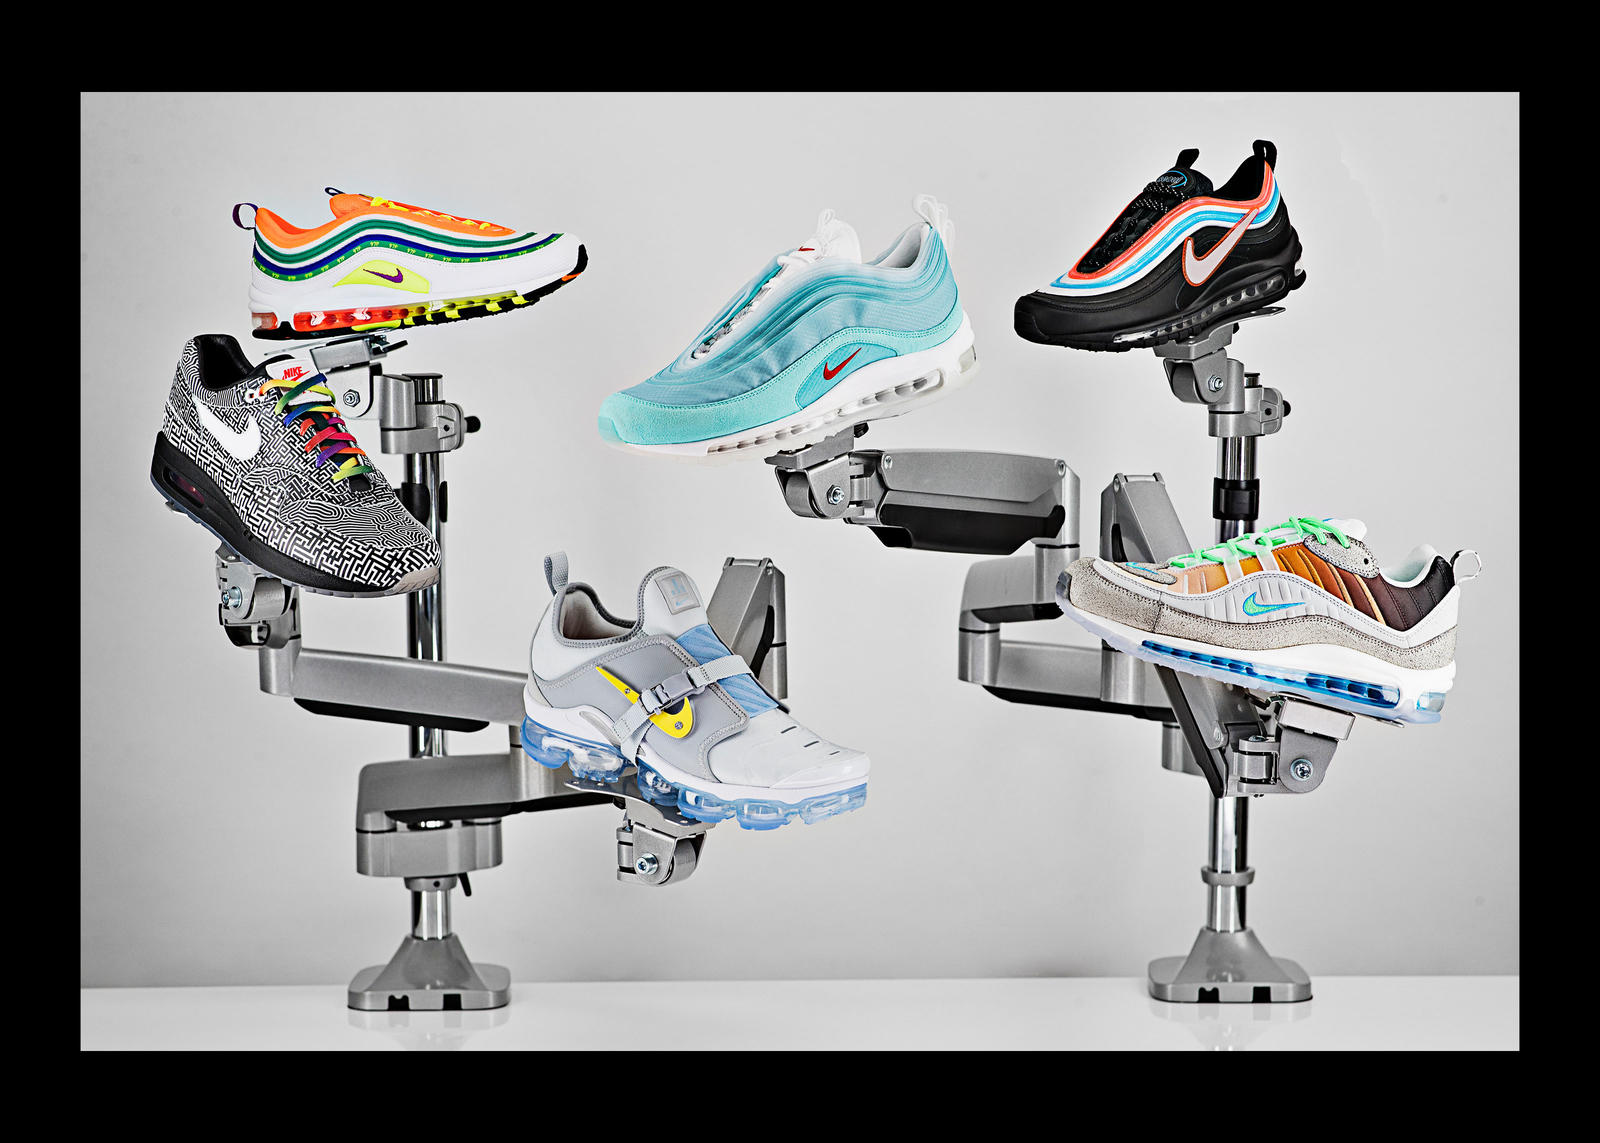 c6e5f189bbb Here are the Final Designs of the Nike  On Air Winners - Nike News